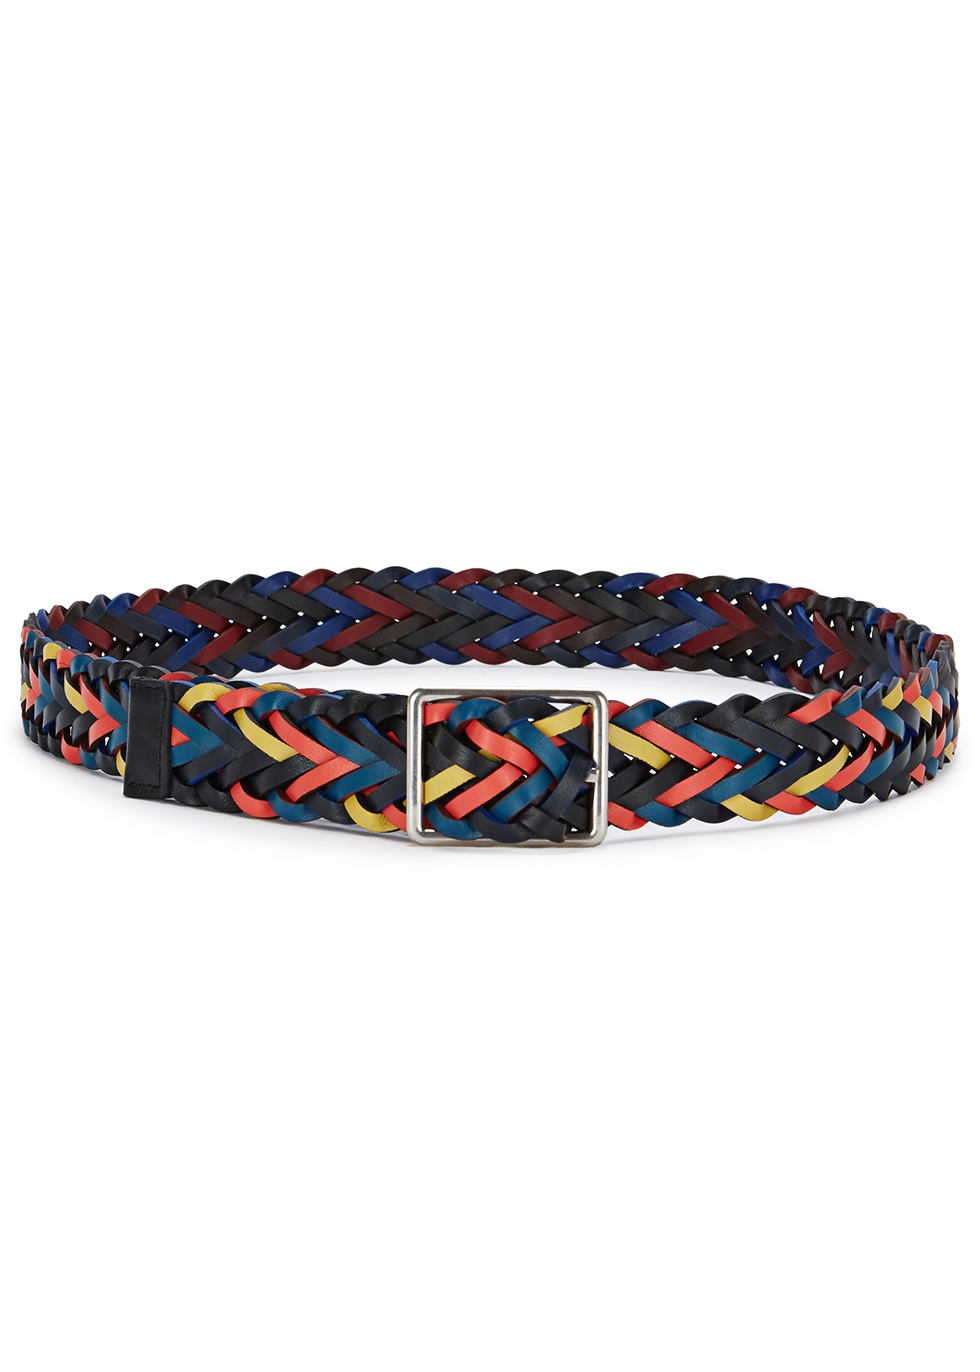 PAUL SMITH REVERSIBLE BRAIDED LEATHER BELT